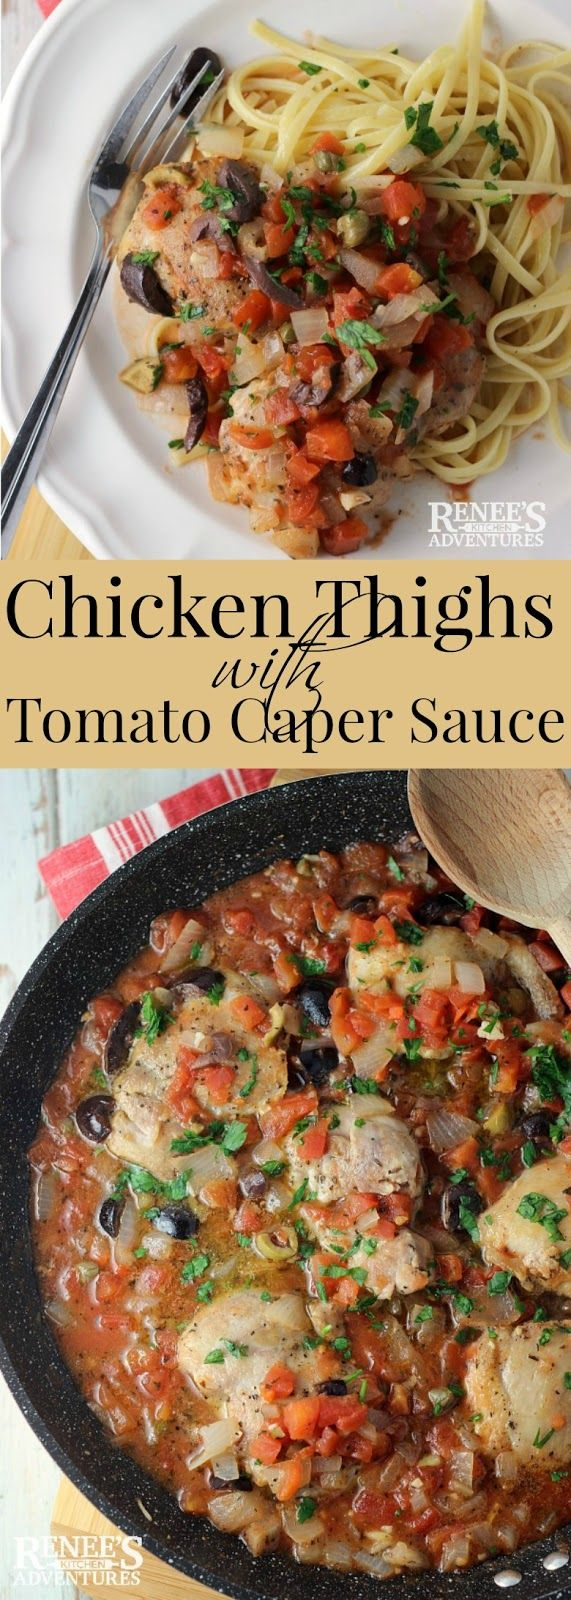 Chicken Thighs with Tomato Caper Sauce | Renee's Kitchen Adventures - 30 minute recipe for an easy and healthy dinner made with chicken thighs, tomatoes, capers and olives